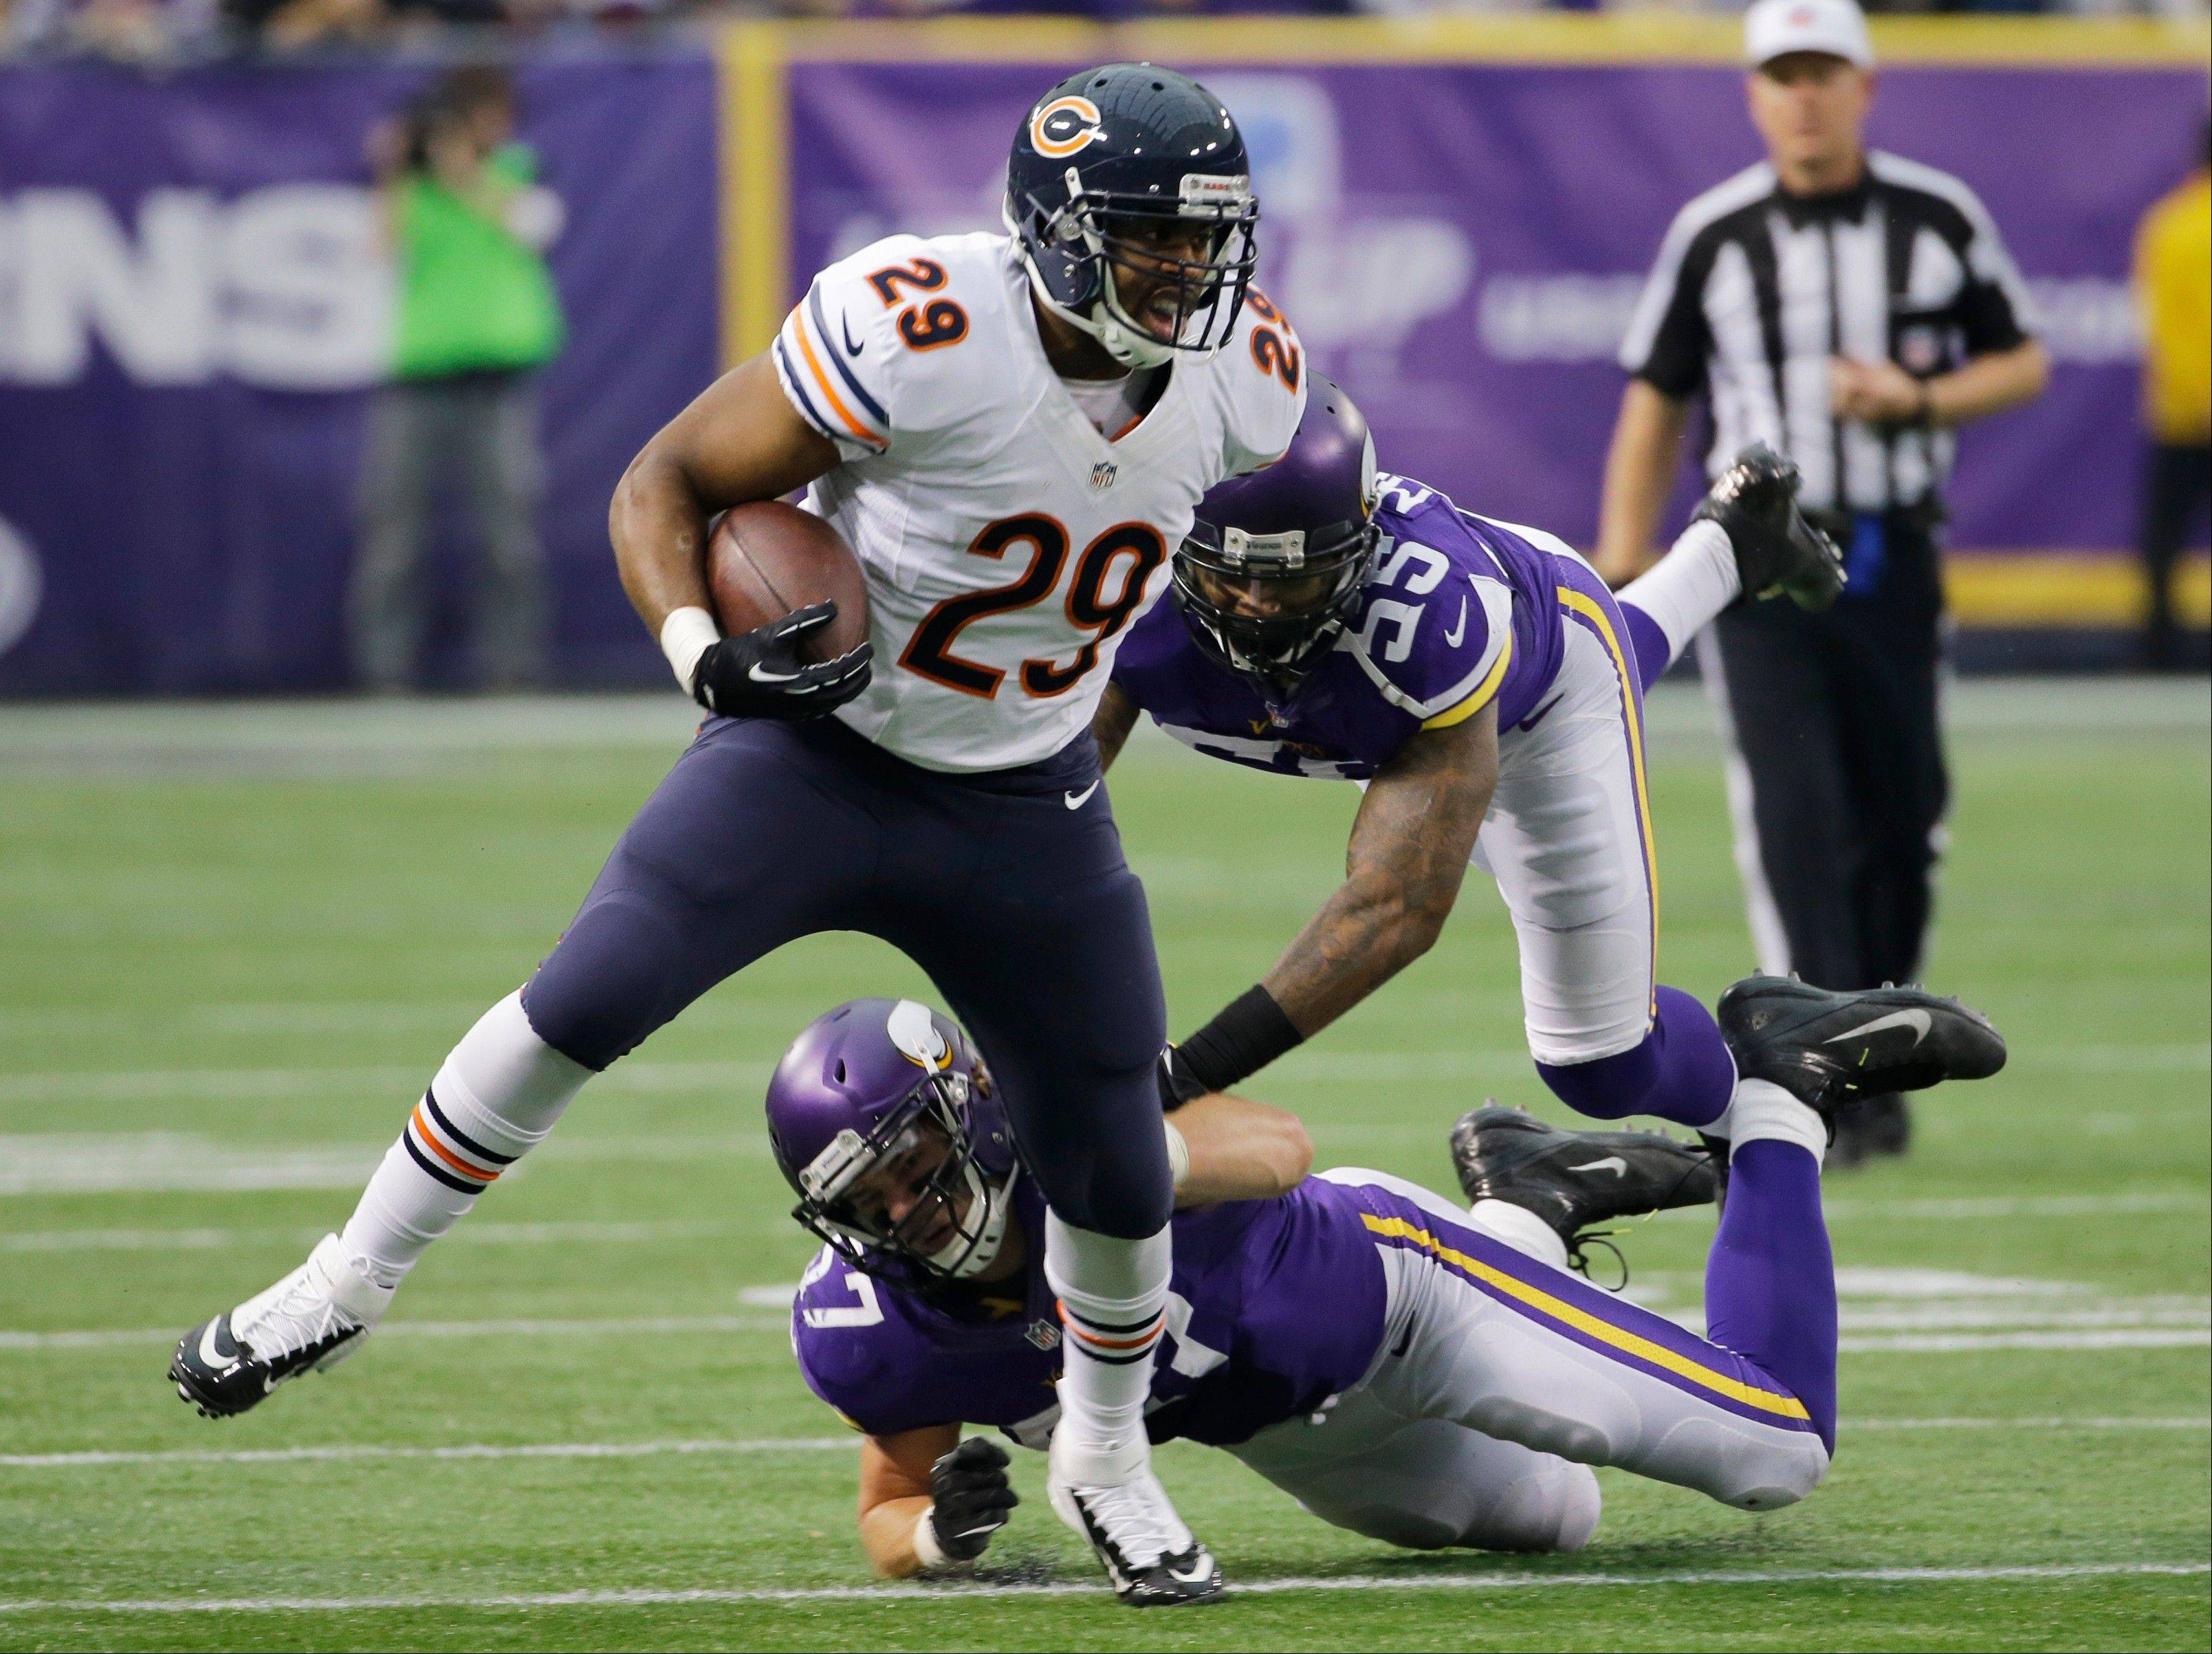 Chicago Bears running back Michael Bush (29) runs from Minnesota Vikings defenders Audie Cole and Marvin Mitchell (55) during the first half.